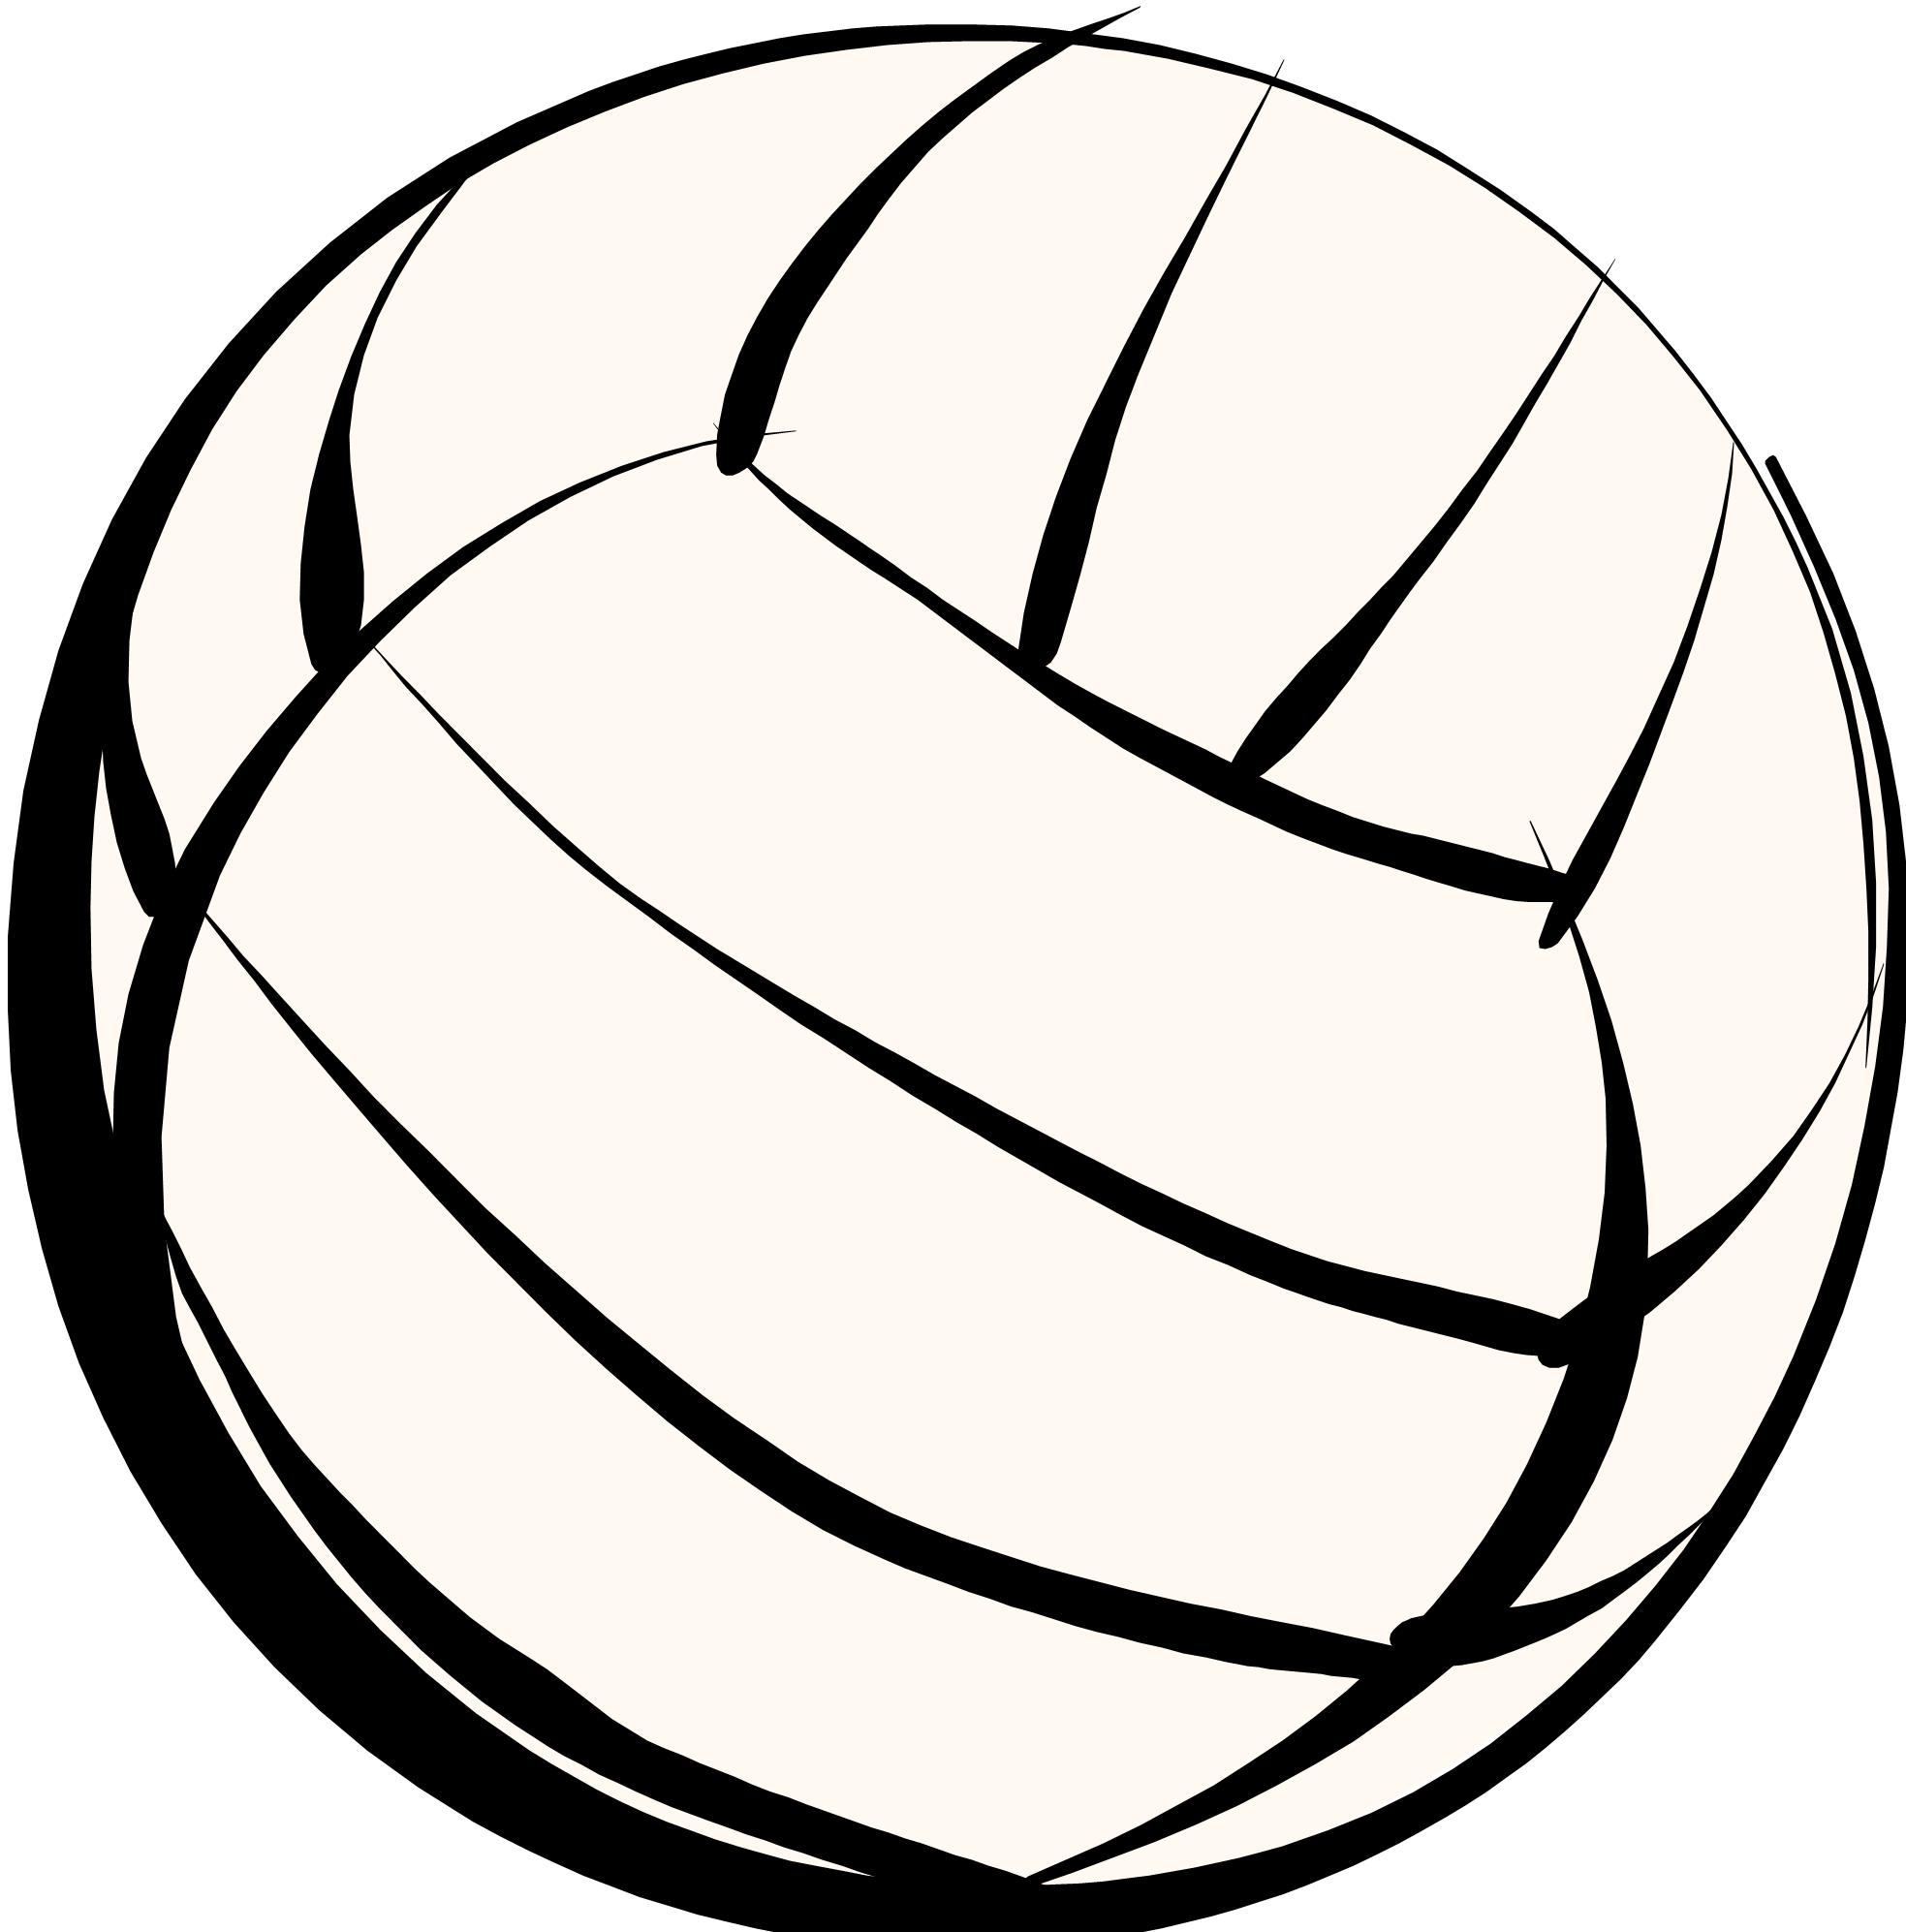 Volleyball clipart vectors jpg royalty free stock Vector Volleyball Clip Art free image jpg royalty free stock